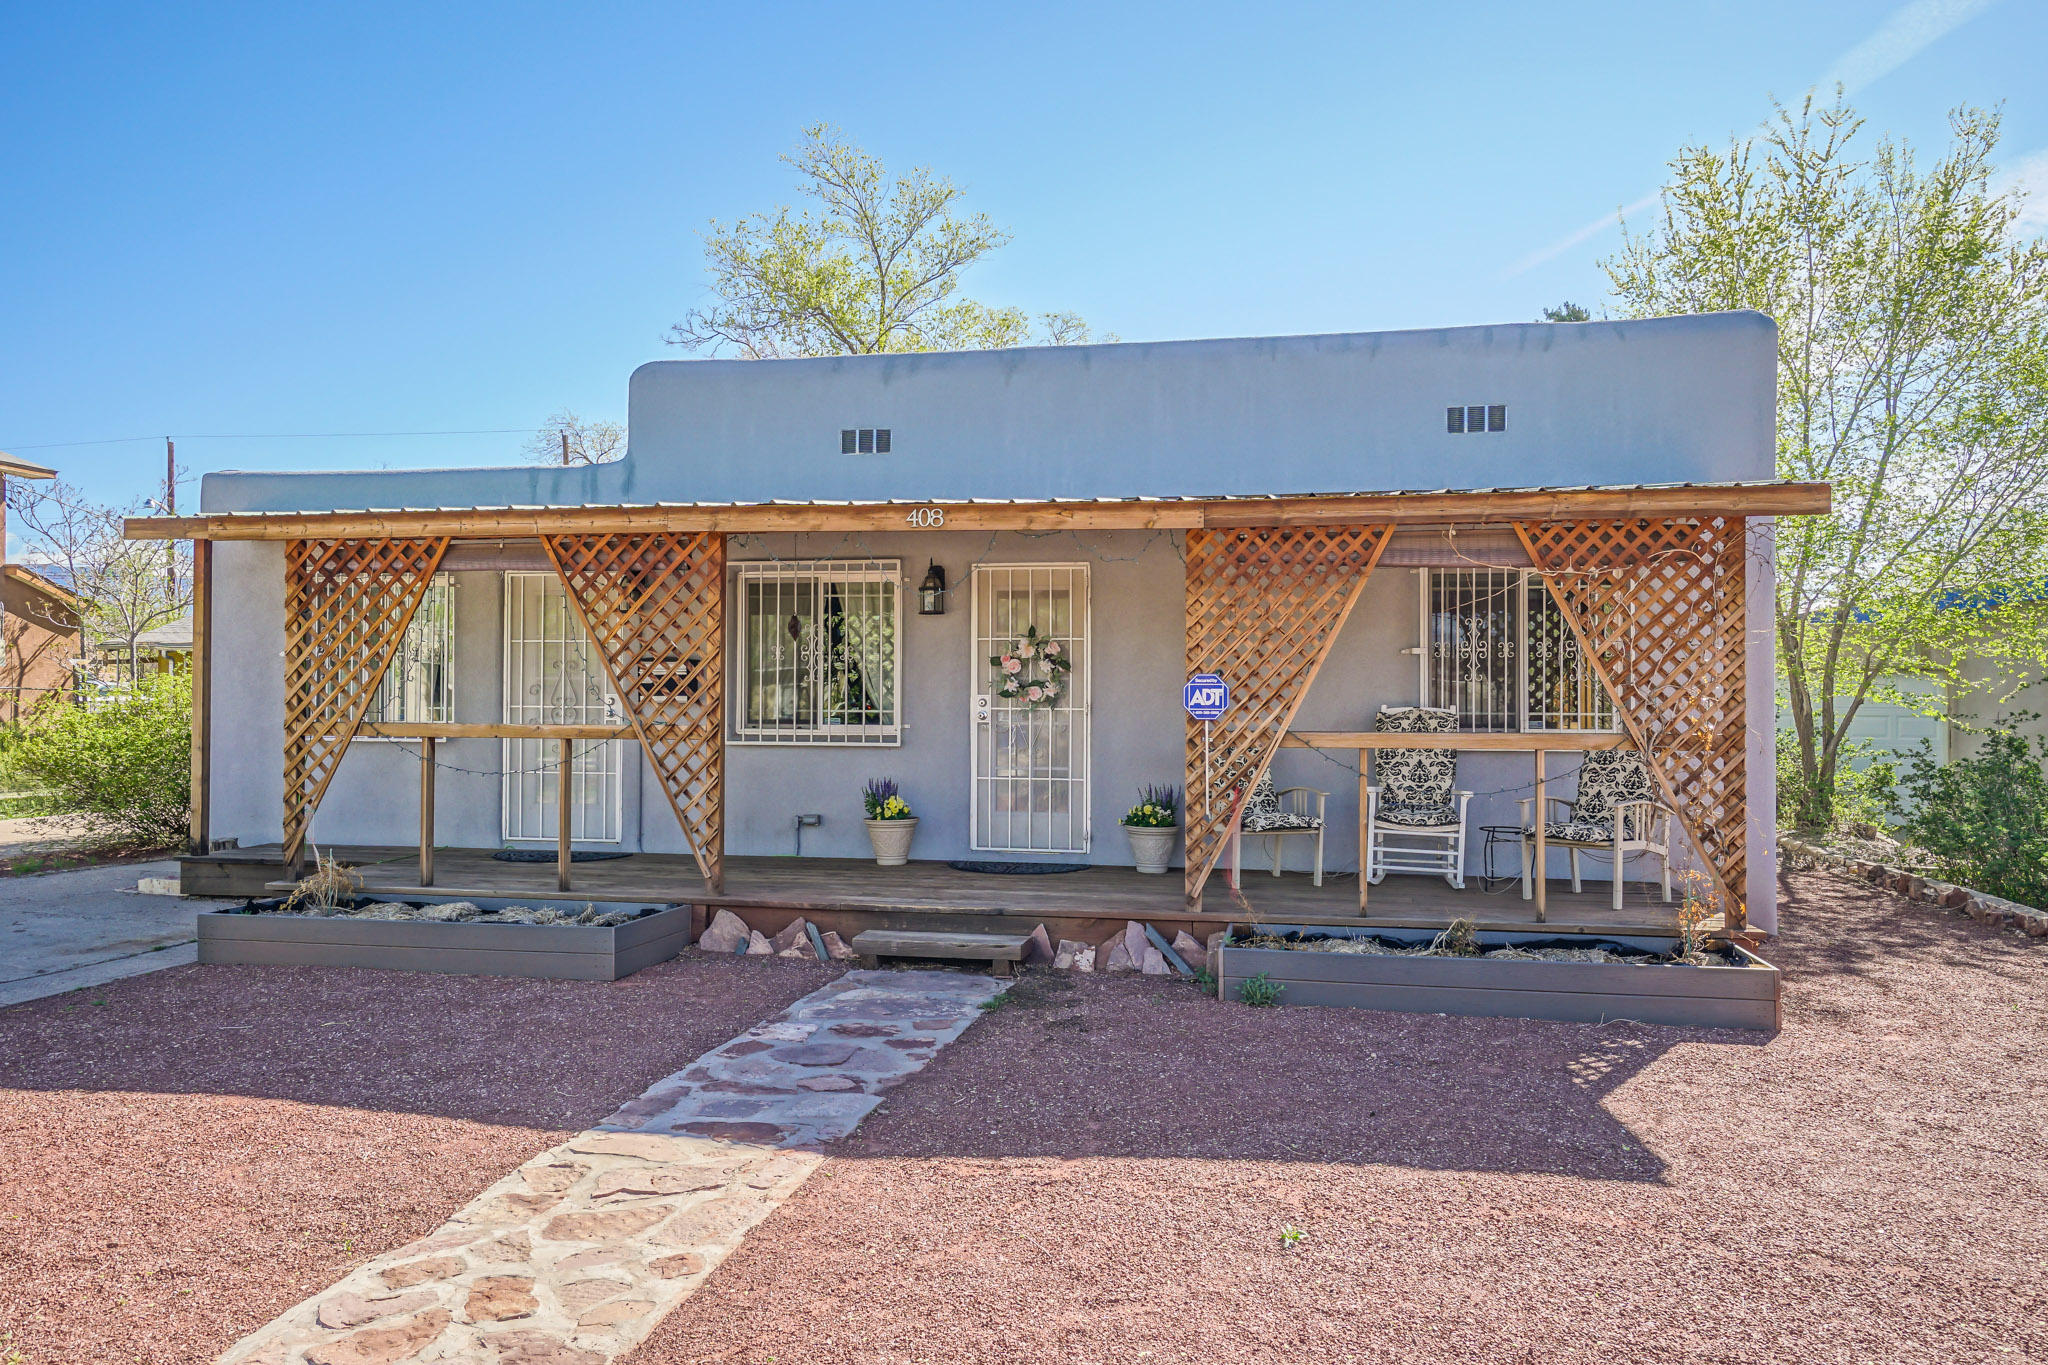 Super close to UNM, Nob Hill, CNM, restaurants, hospitals & Kirtland AFB! Great updates in this home w/separate 2BR/1BA casita! Bandelier Elementary. Main house features 3BR/3BA, refinished wood floors w/on-demand radiant heat, updated kitchen w/island, silestone counters & cherry cabinetry. Updated baths, solid 6-panel doors, 2 fireplaces, 2 living areas, mudroom/laundry w/storage cabinets, updated electrical. Newer roof & exterior stucco, upgraded insulation, security system + custom security windows/doors. Alley access and plenty of driveway and off-street parking. Lovely fenced yard has covered deck, fire pit, mature landscaping. Casita includes newer kitchen/baths/floors, updated plumbing/elec, on-demand H2O & 2 car parking. Marketing pictures and Matterport tour taken in 2019.